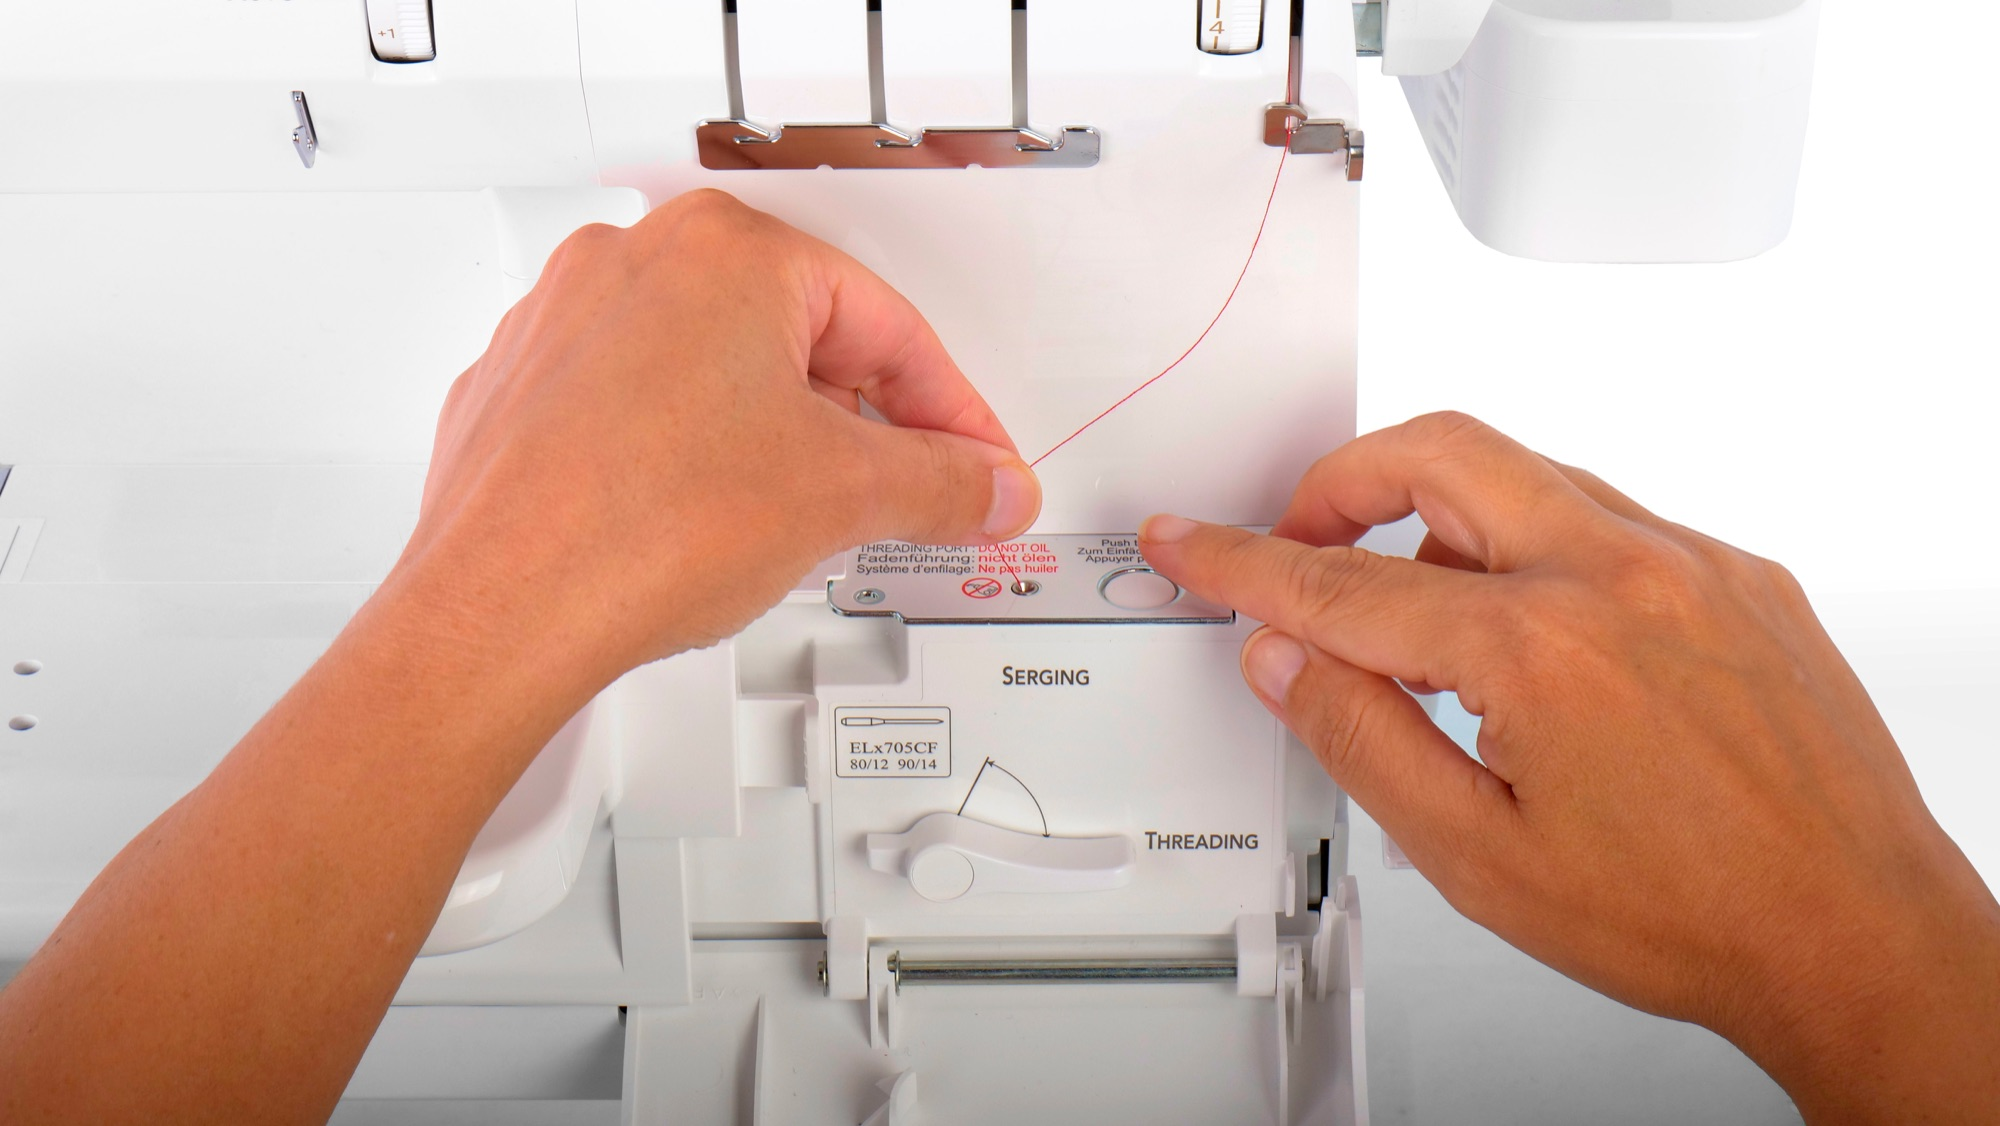 Baby lock Euphoria ExtraordinAir looper threading system - push the button and the loopers are threaded by jet air